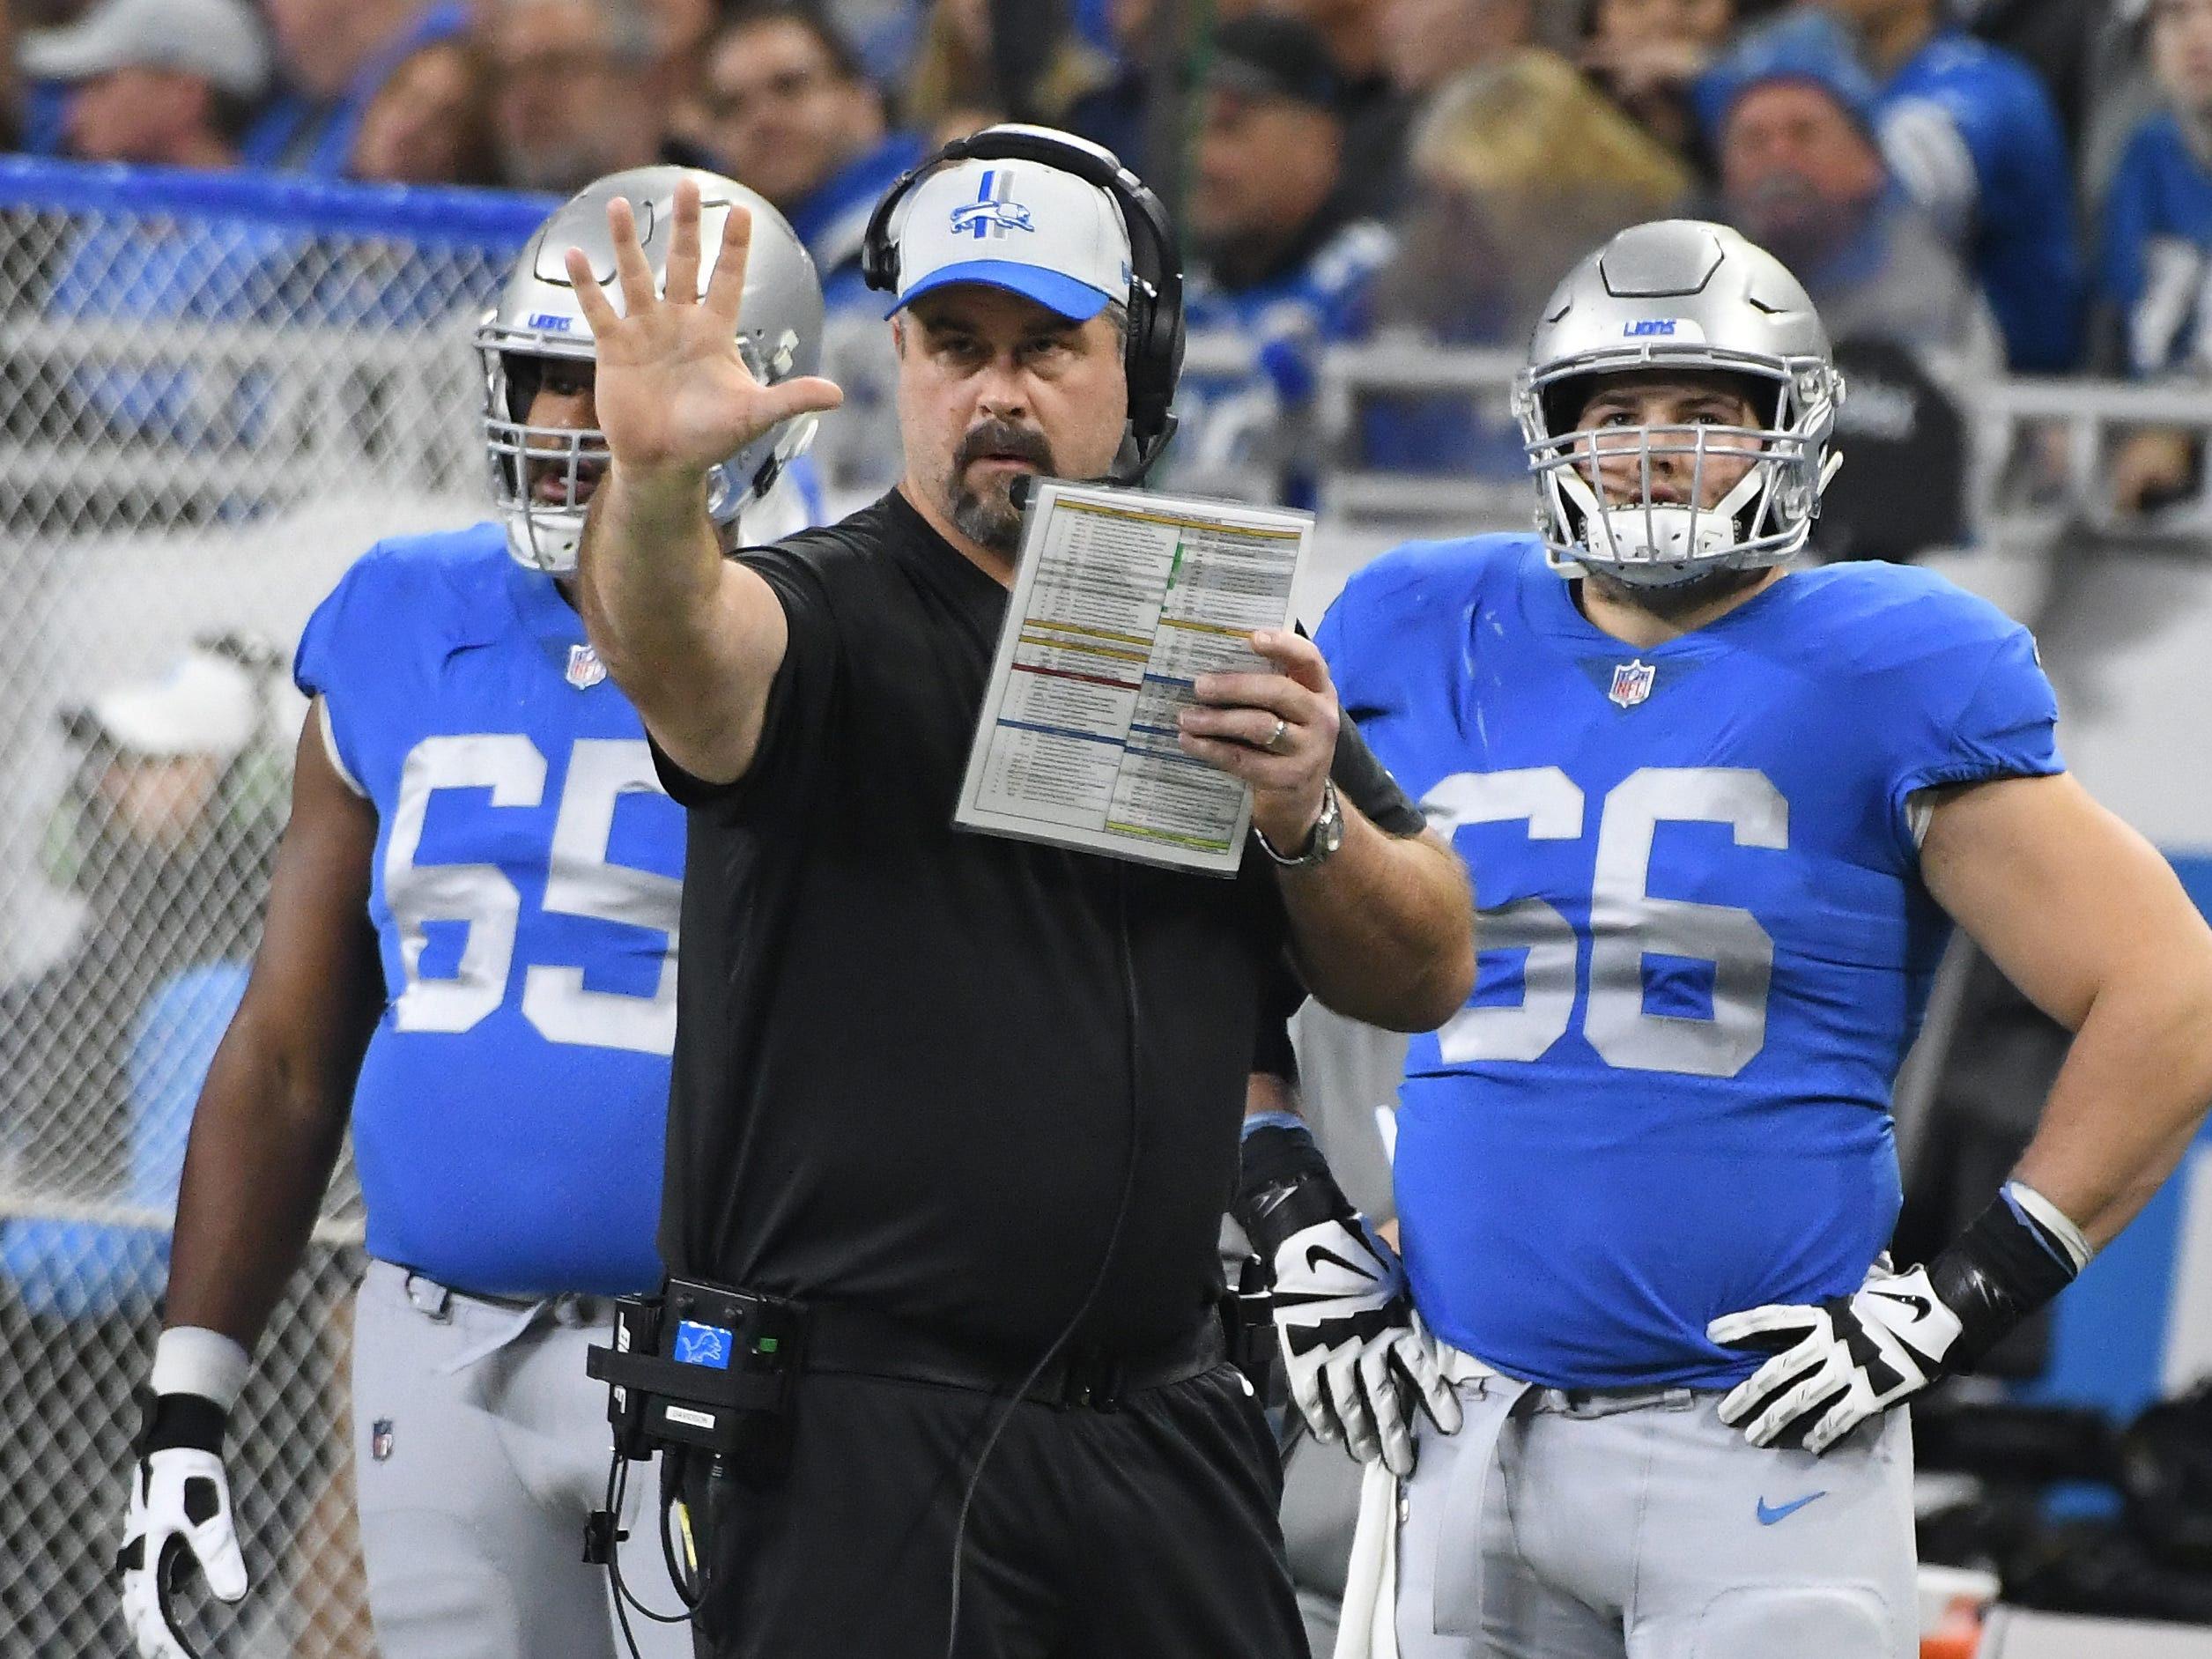 Lions offensive line coach Jeff Davidson works the sidelines in the first quarter.